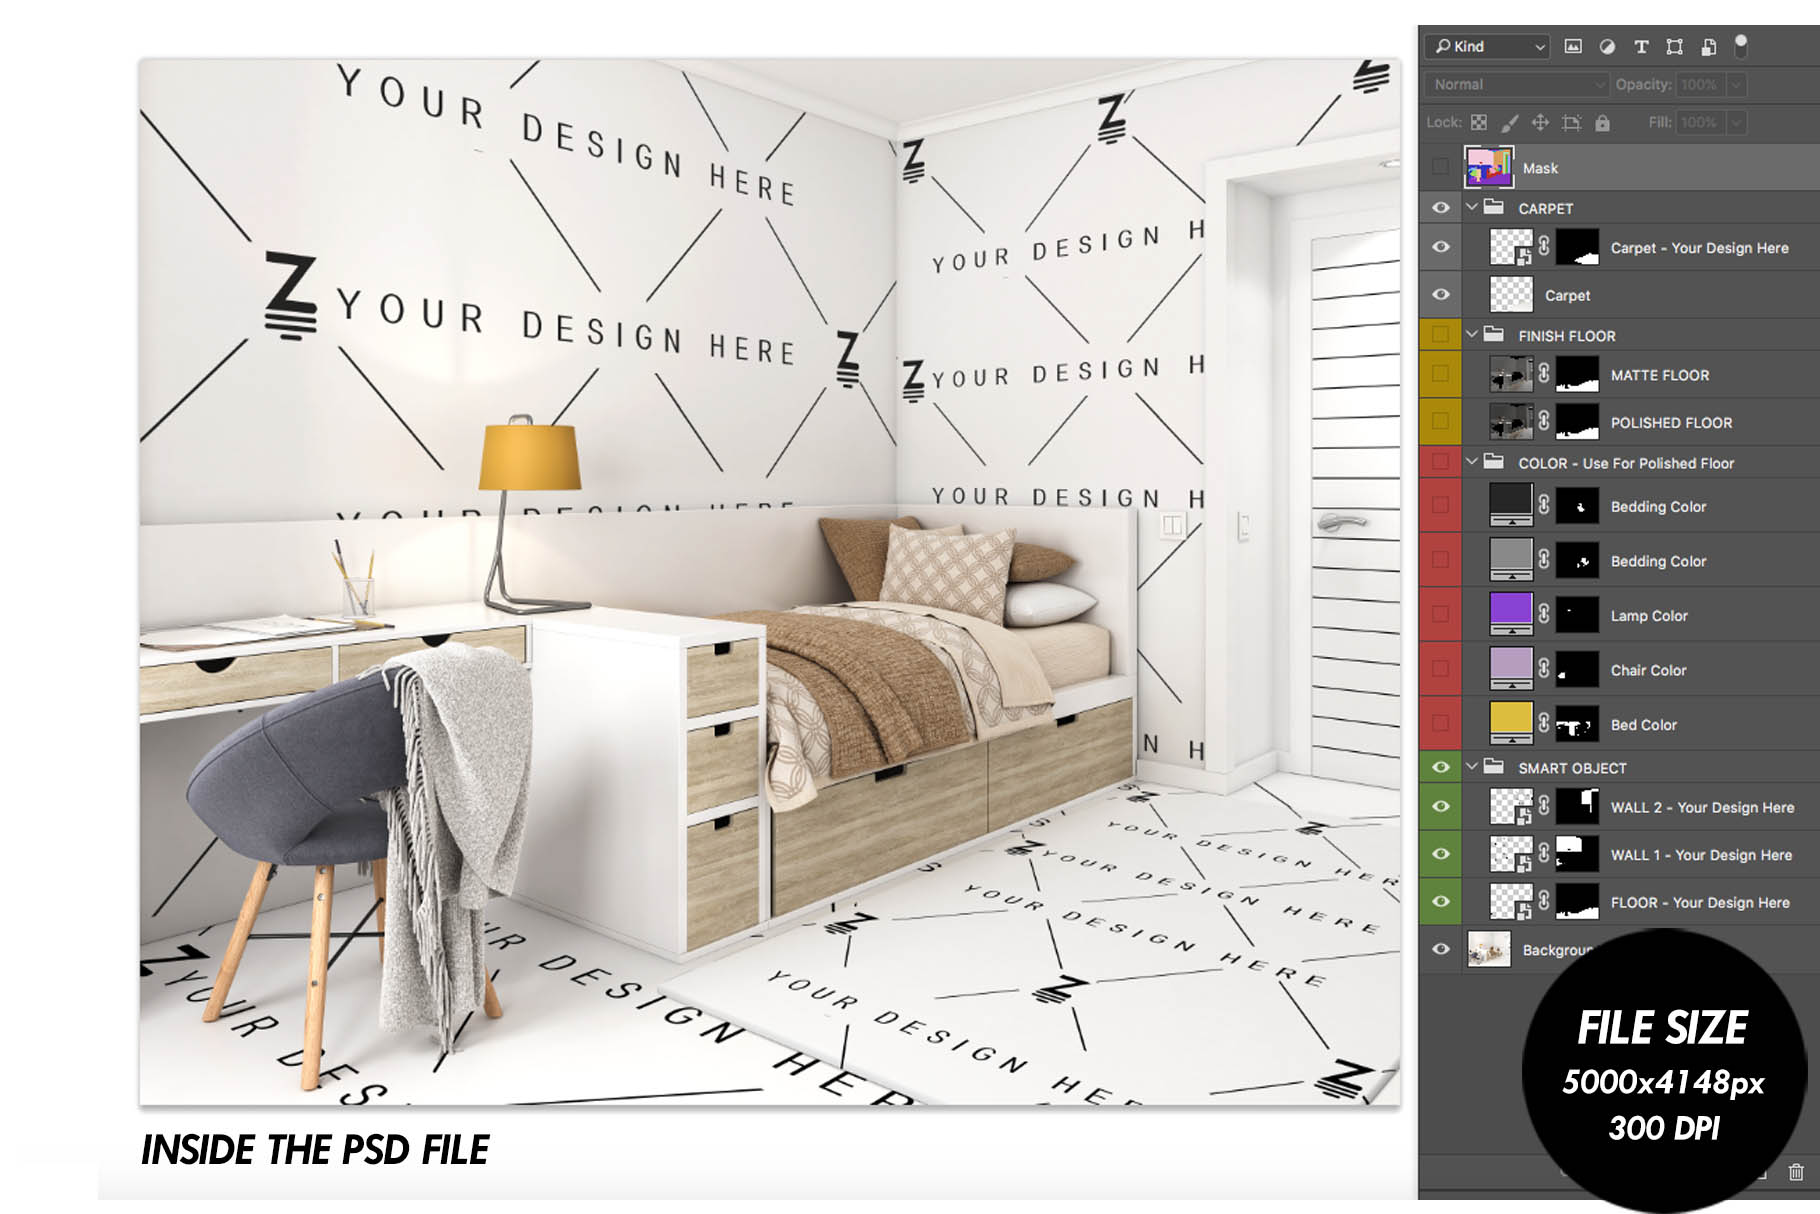 Wallpaper, floor and carpet Mockup Kids Bedroom SM62 example image 4